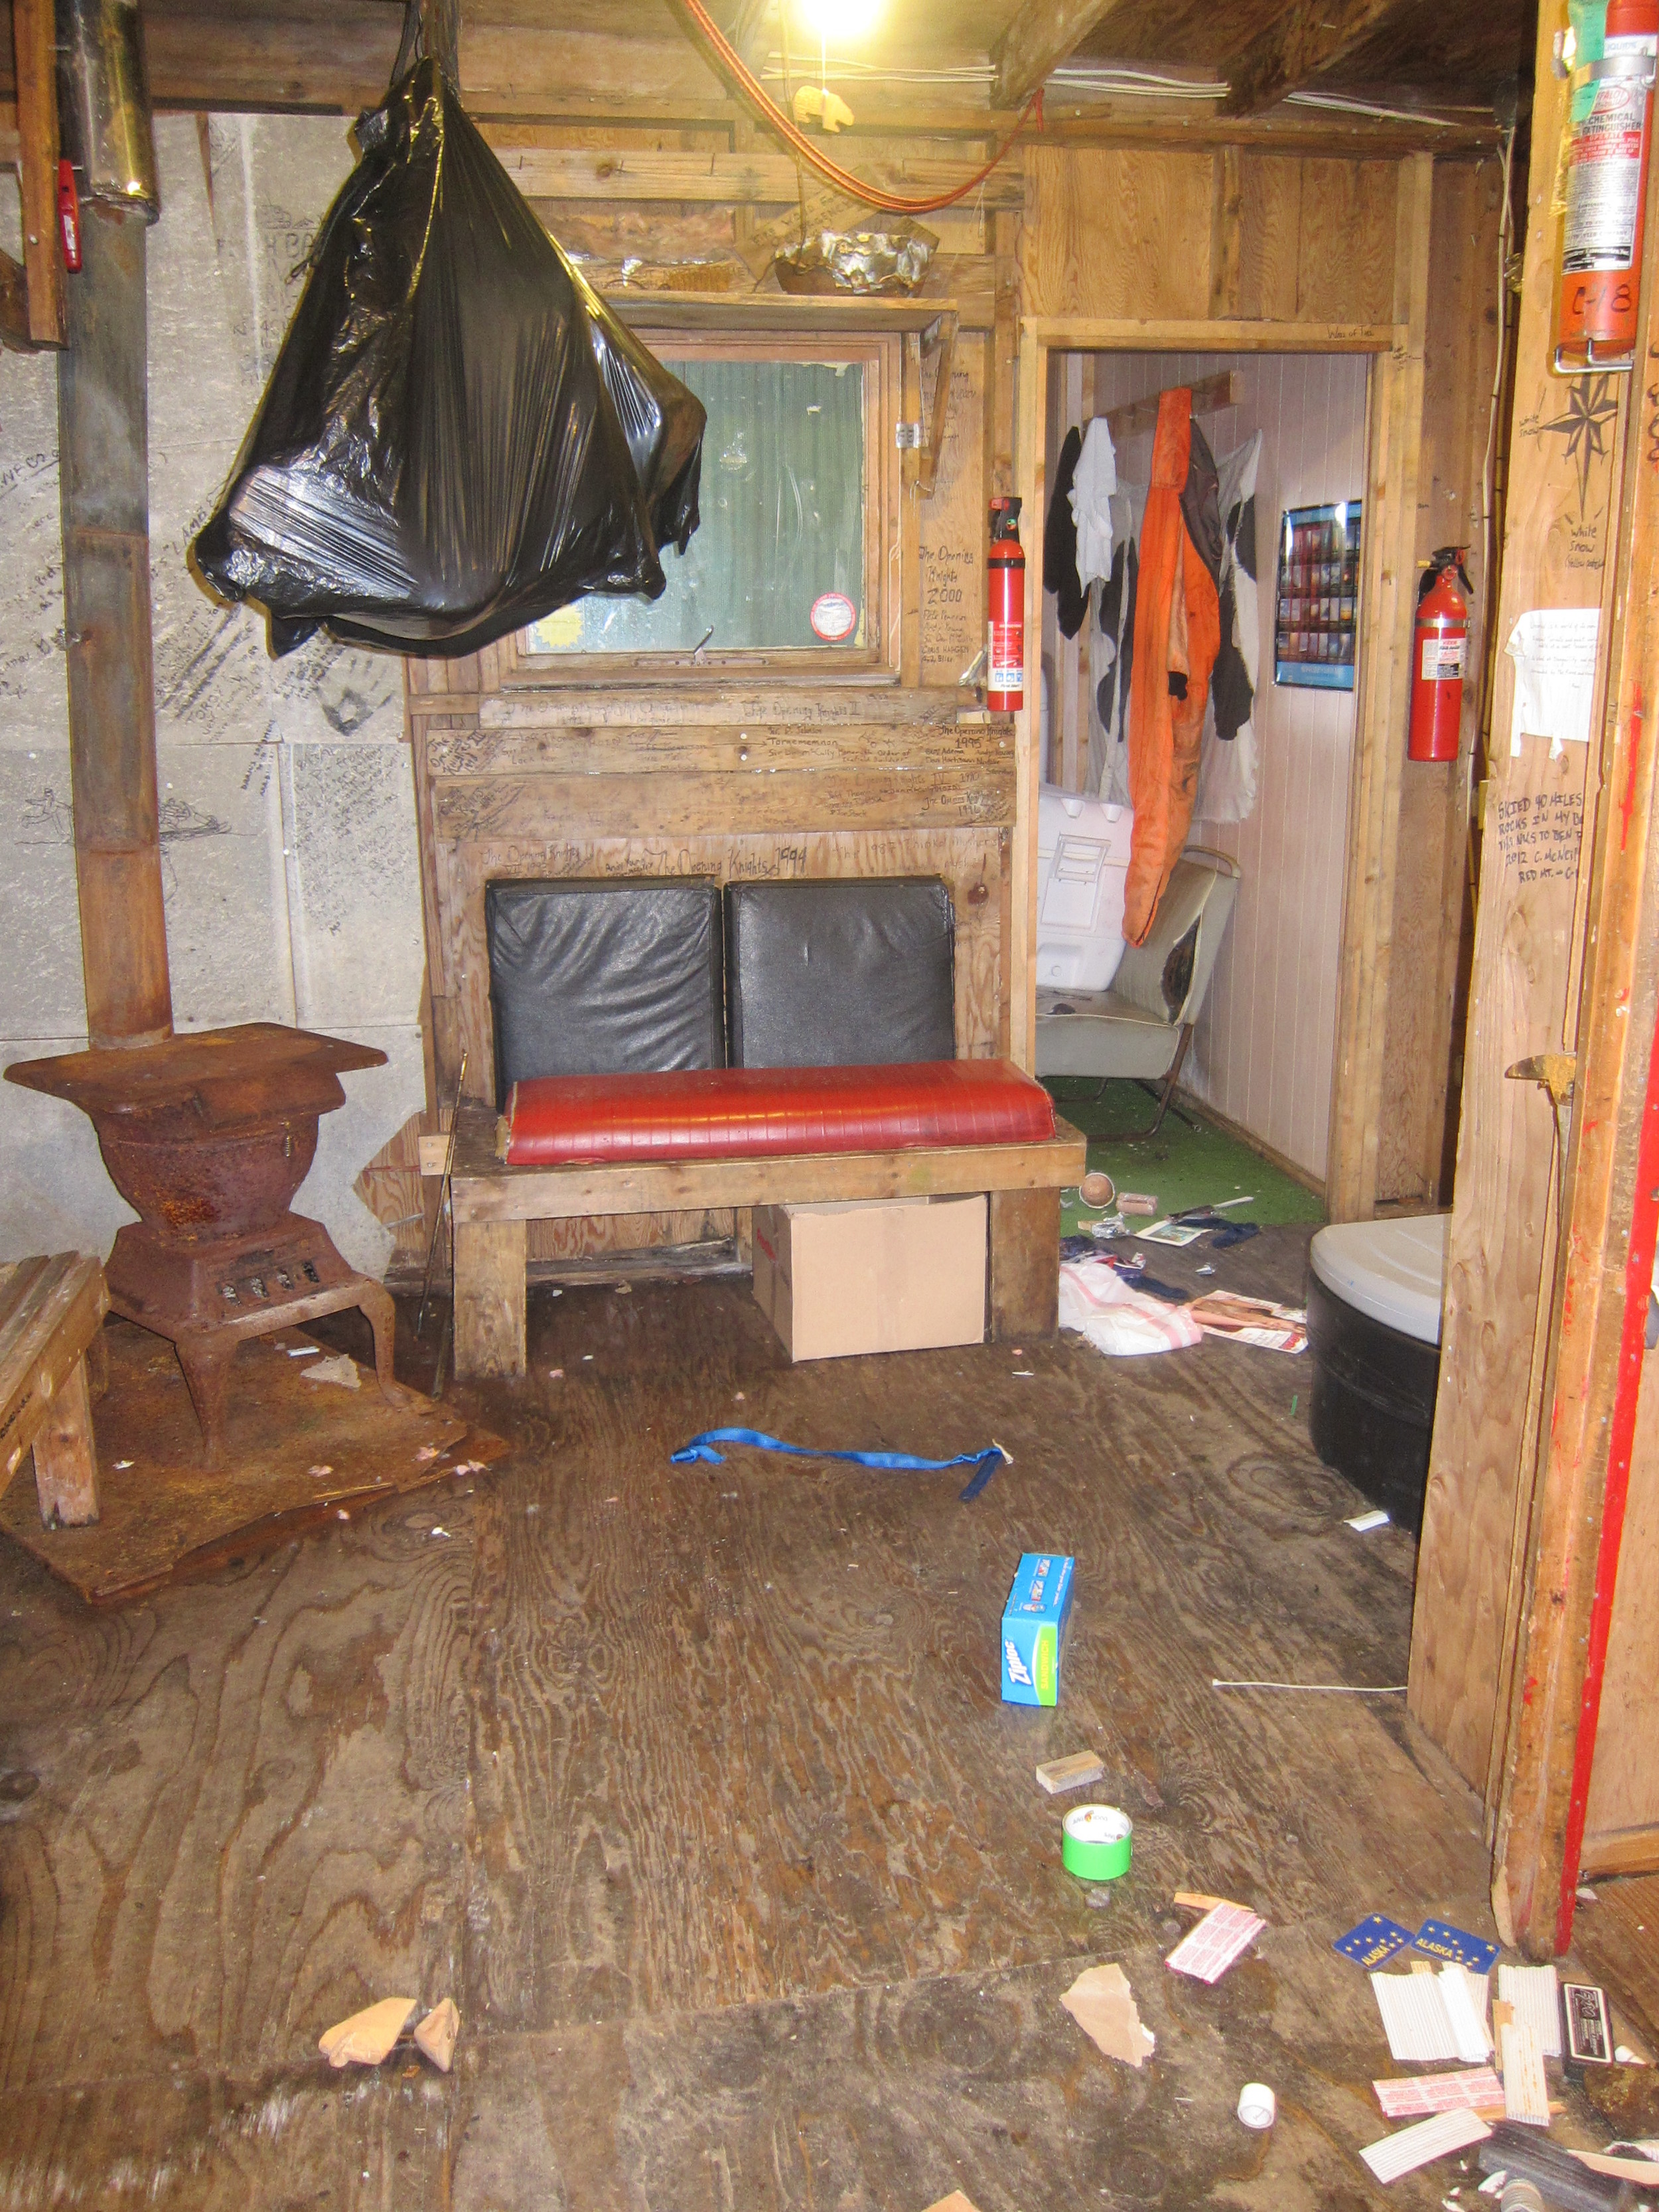 The wood stove area before cleaning.